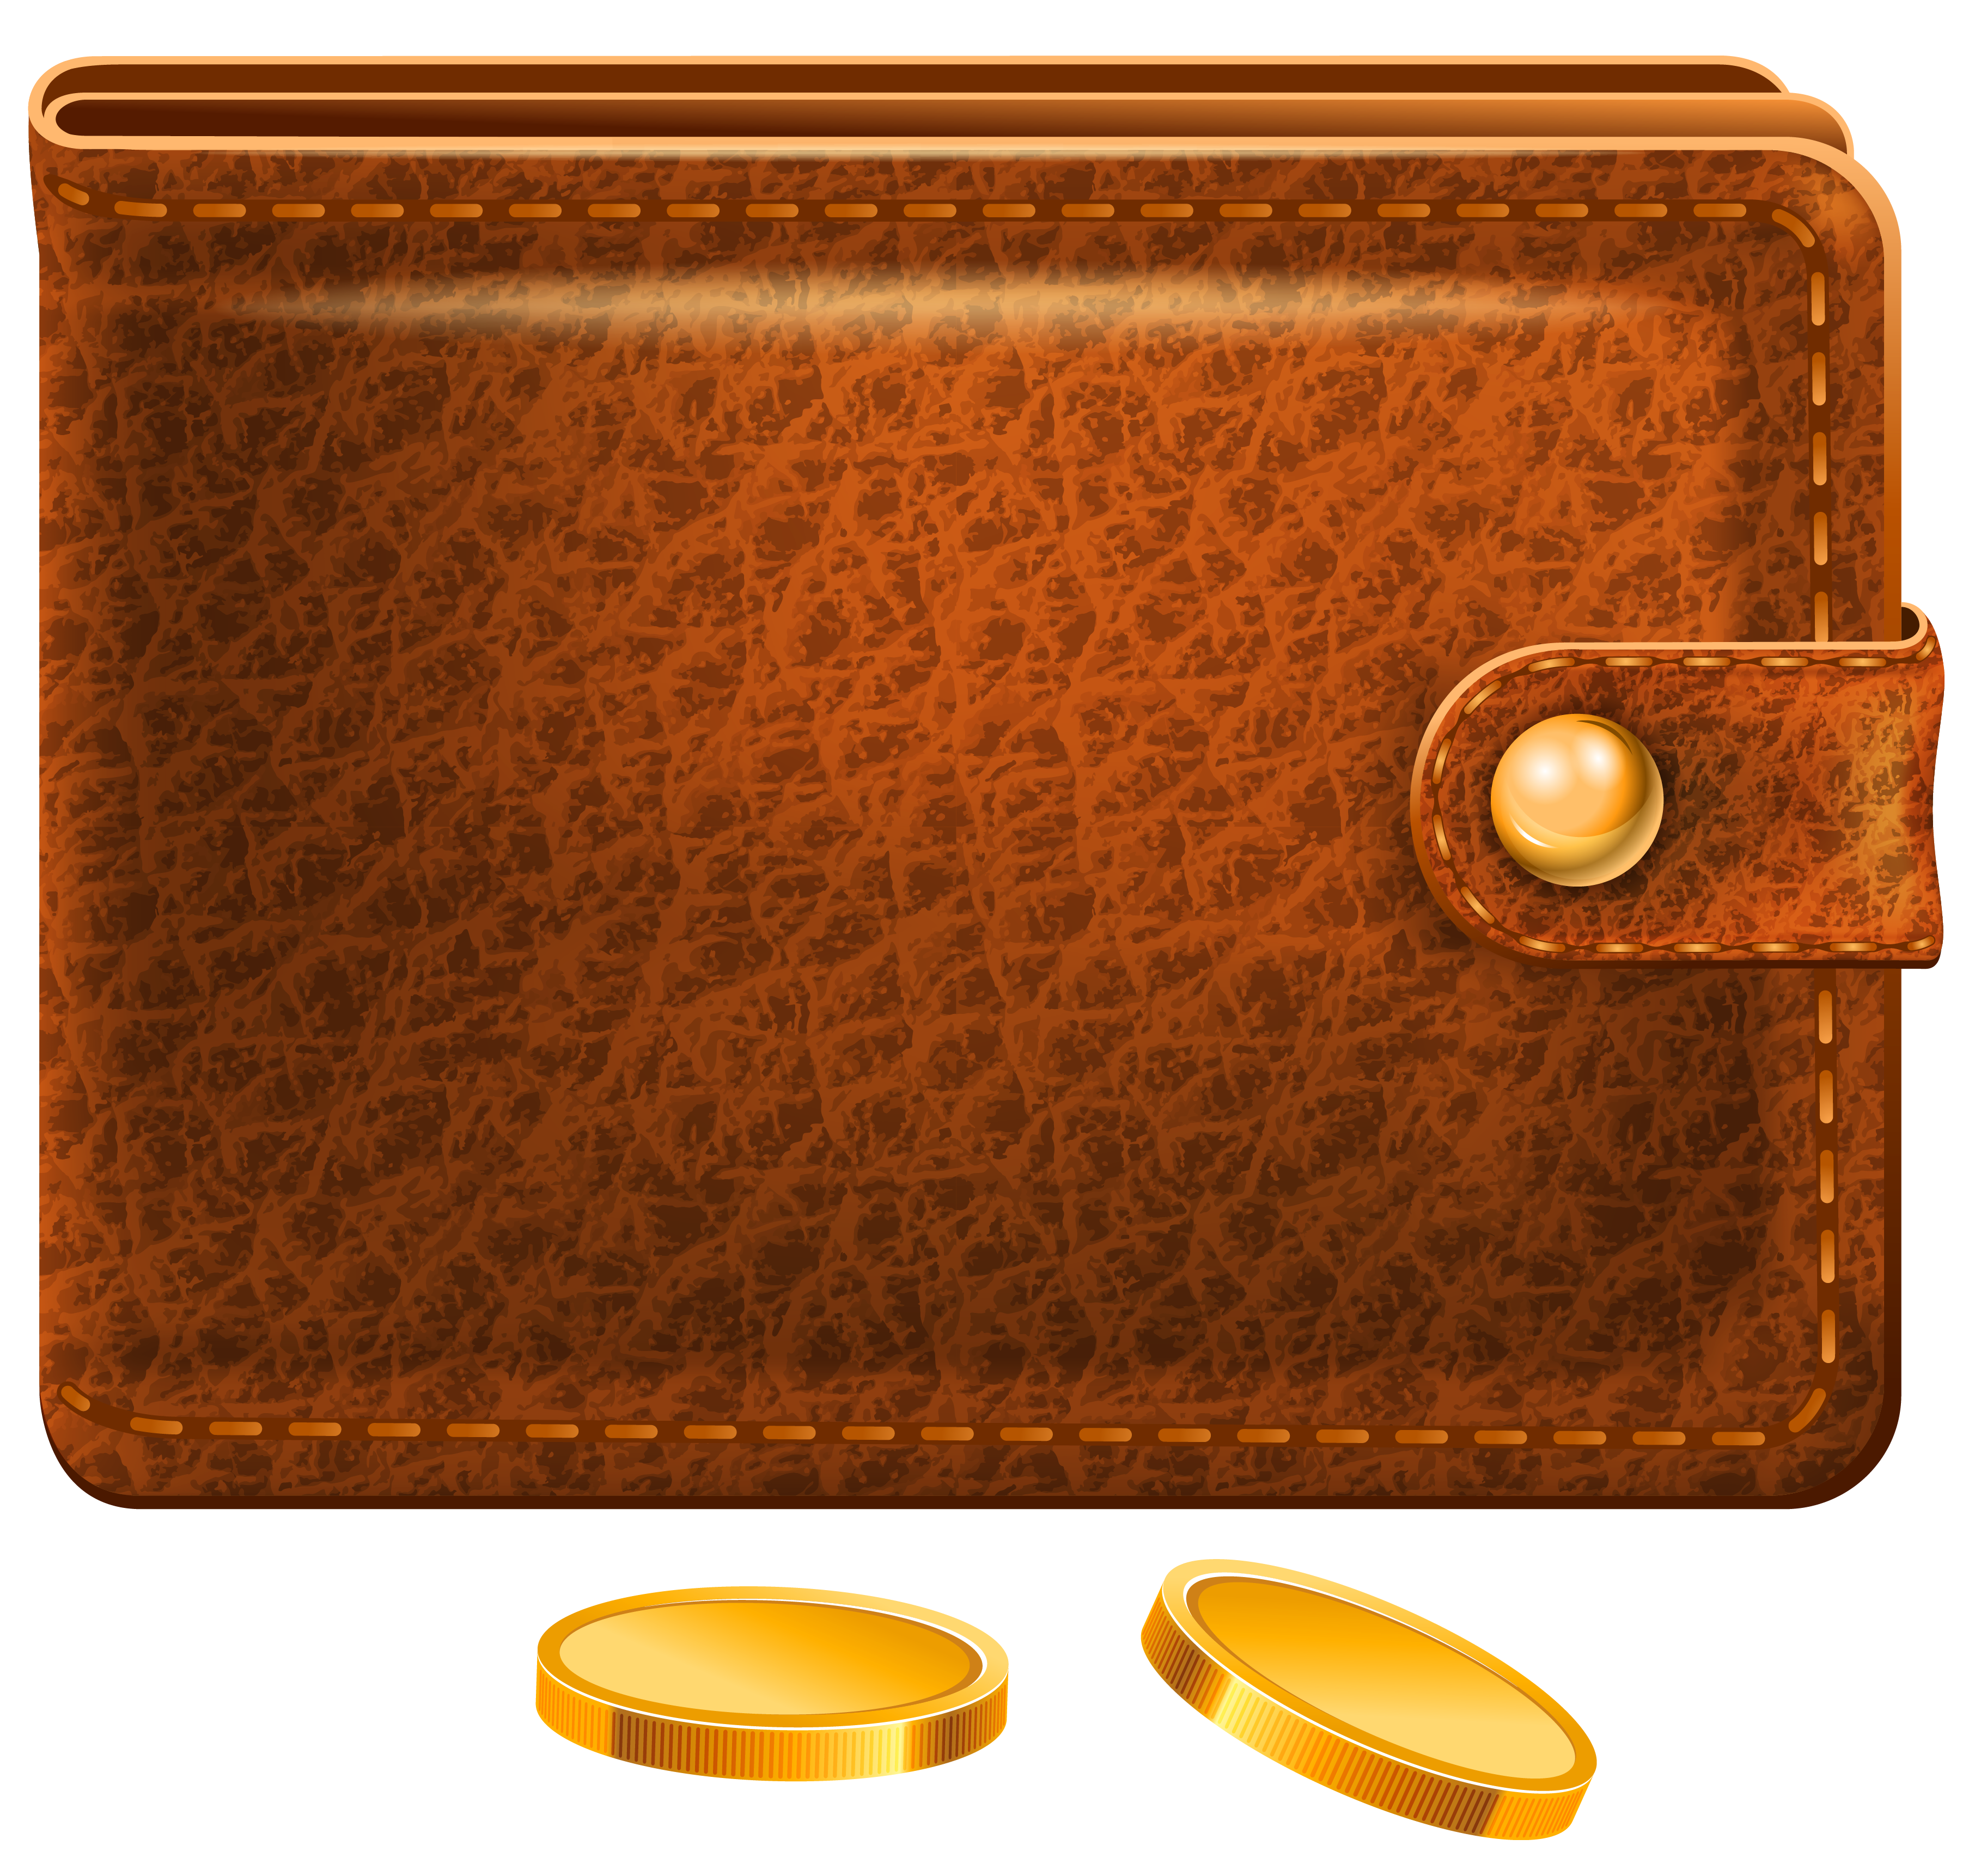 Coin clipart color. Wallet with coins png